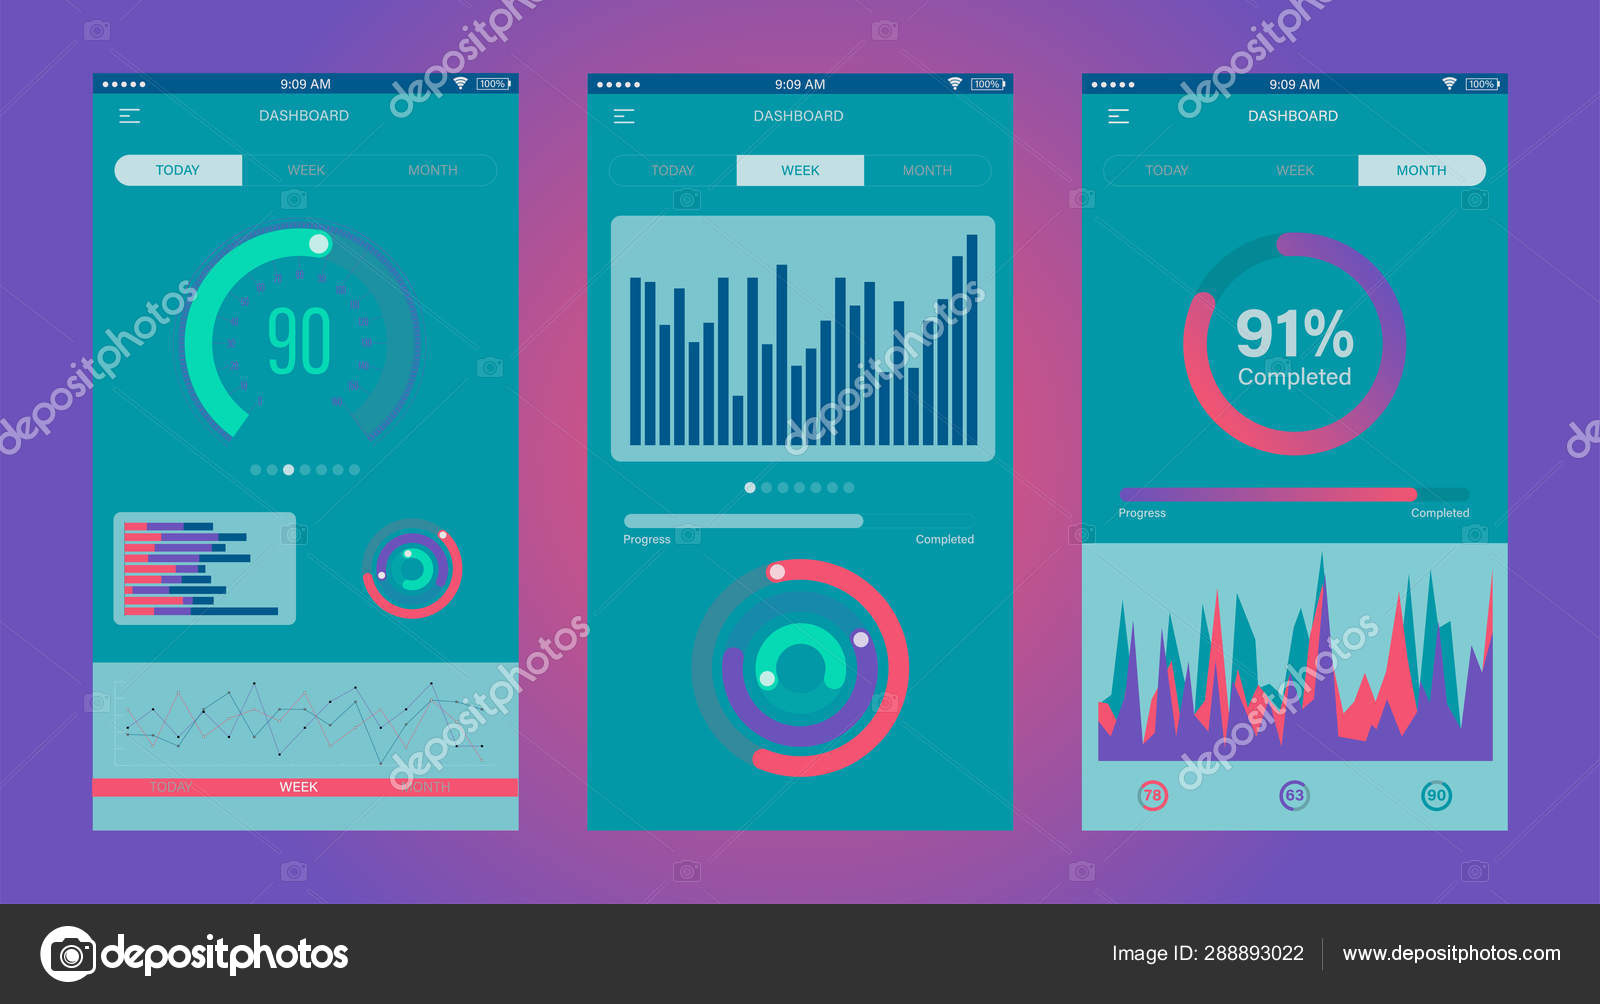 Daily Dashboard Template